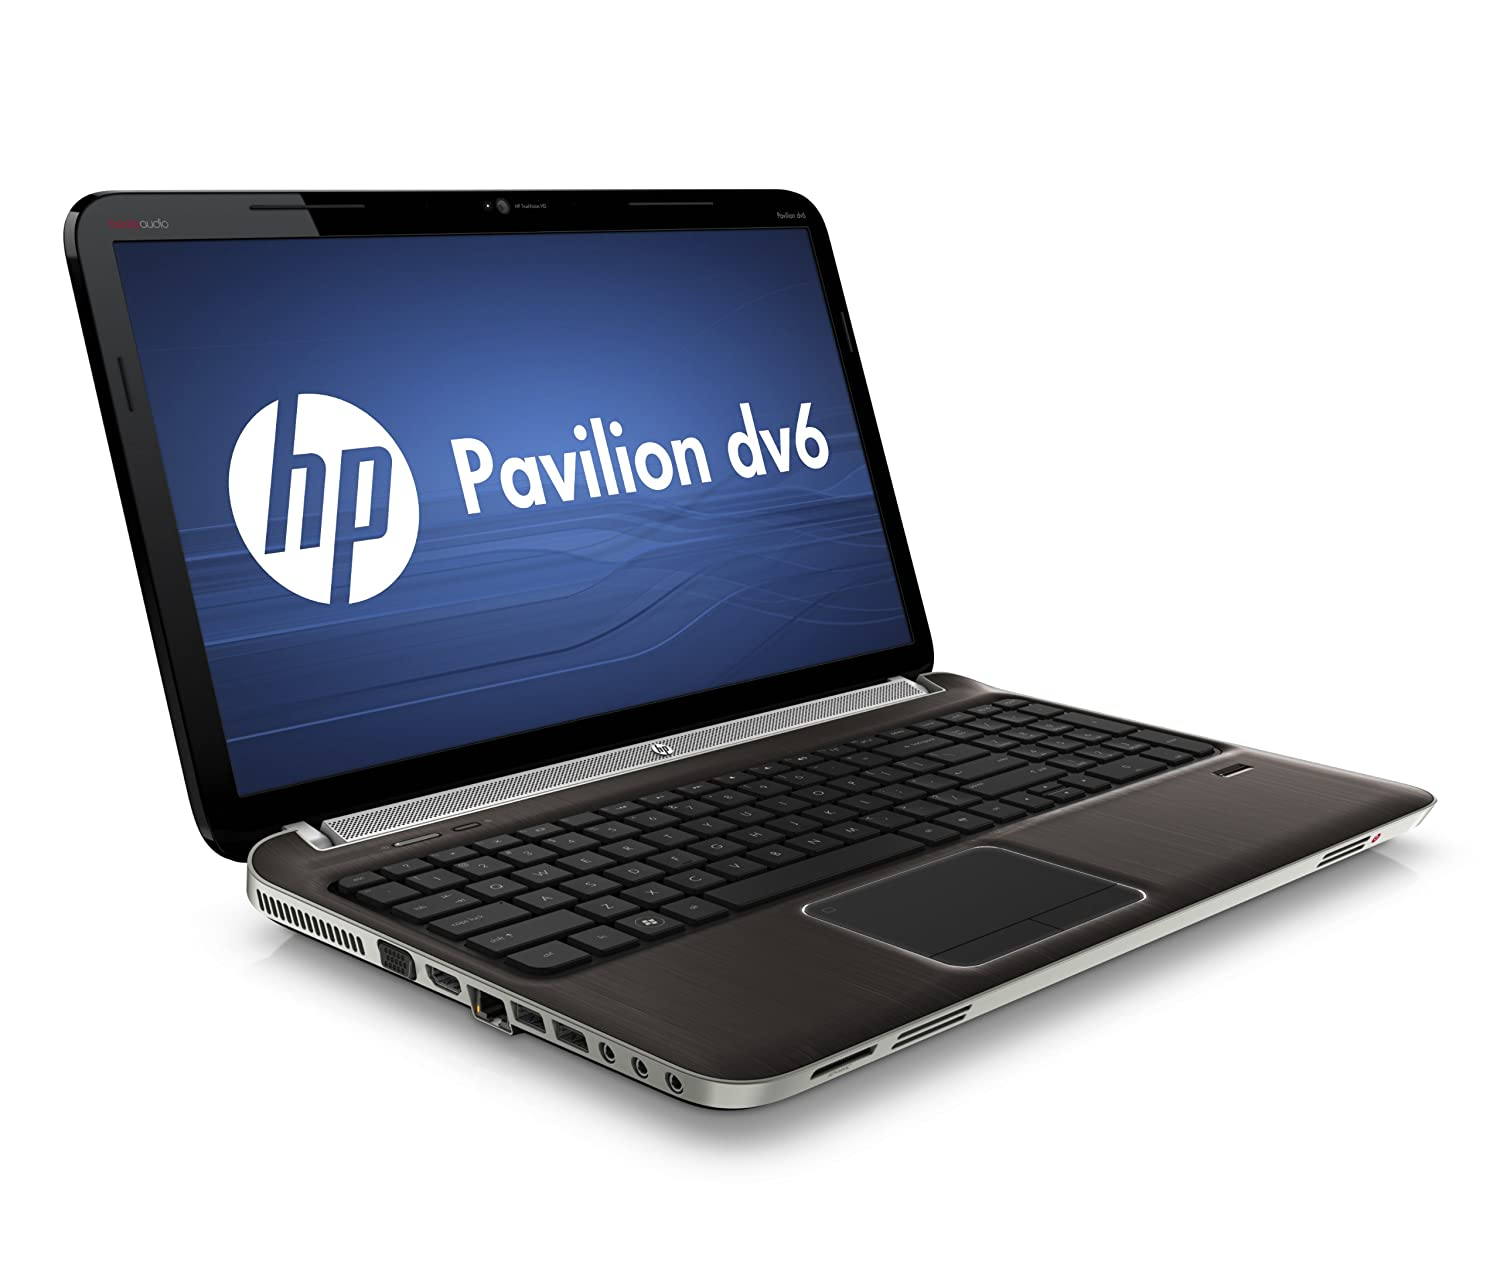 HP Pavilion DV6-6002 15.6 inch Laptop (AMD Phenom Quad core P960 Processor,  4GB RAM, 750GB HDD, Windows 7 Home Premium) - Aluminium: Amazon.co.uk:  Computers ...